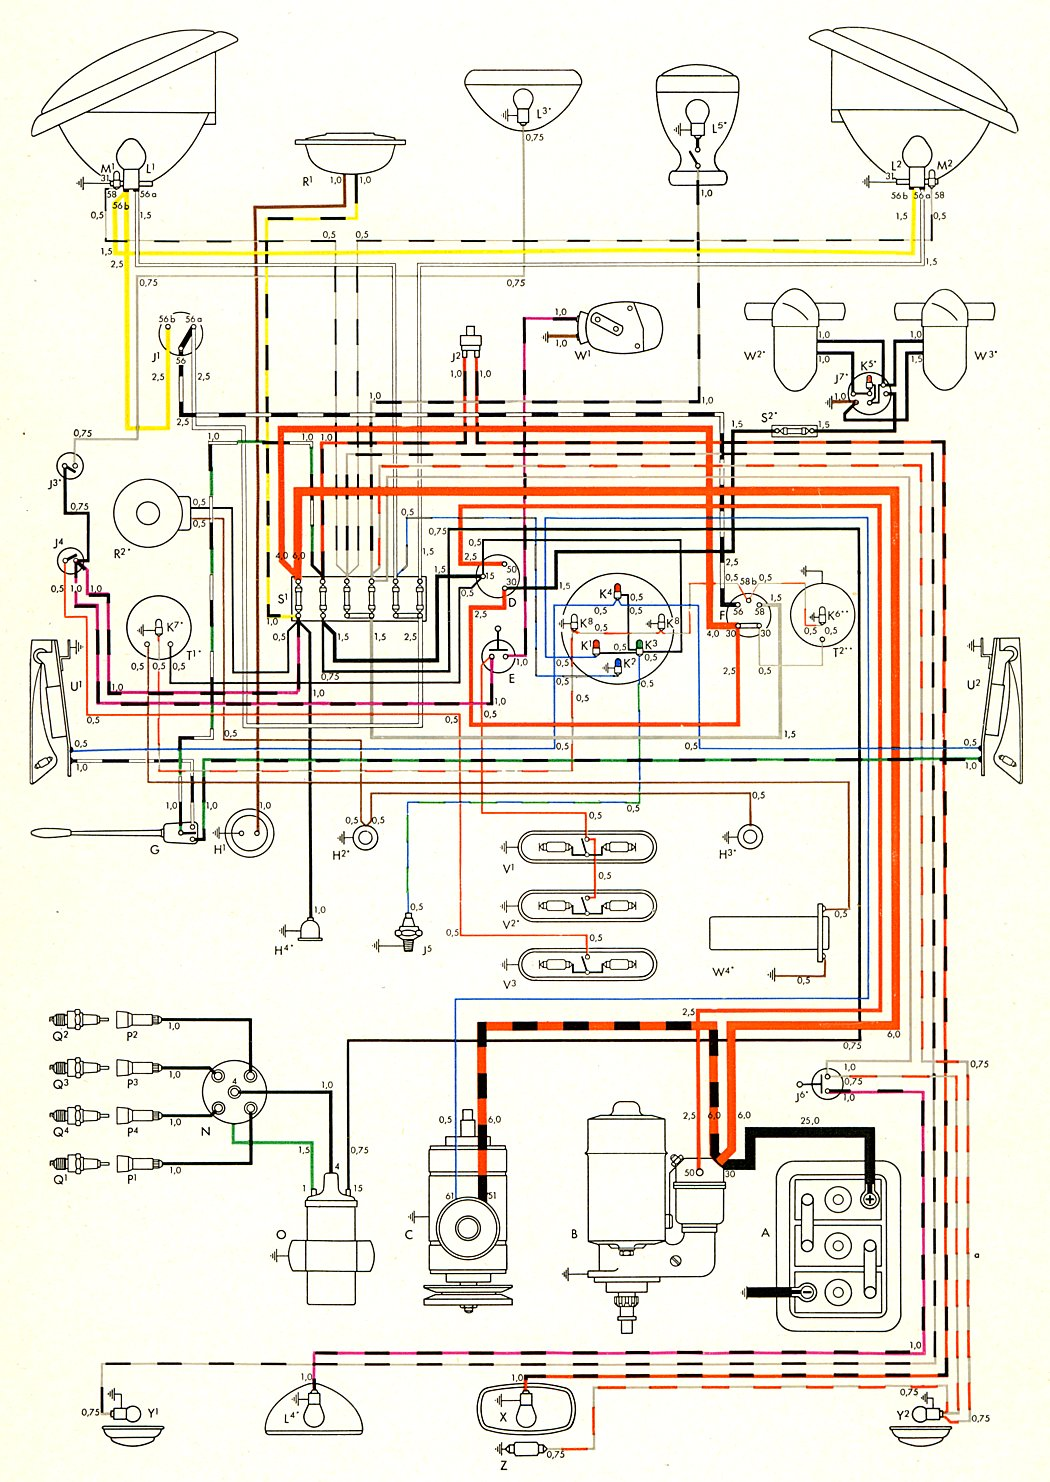 bus_nov57 1957 bus wiring diagram thegoldenbug com 1971 vw bus wiring diagram at crackthecode.co